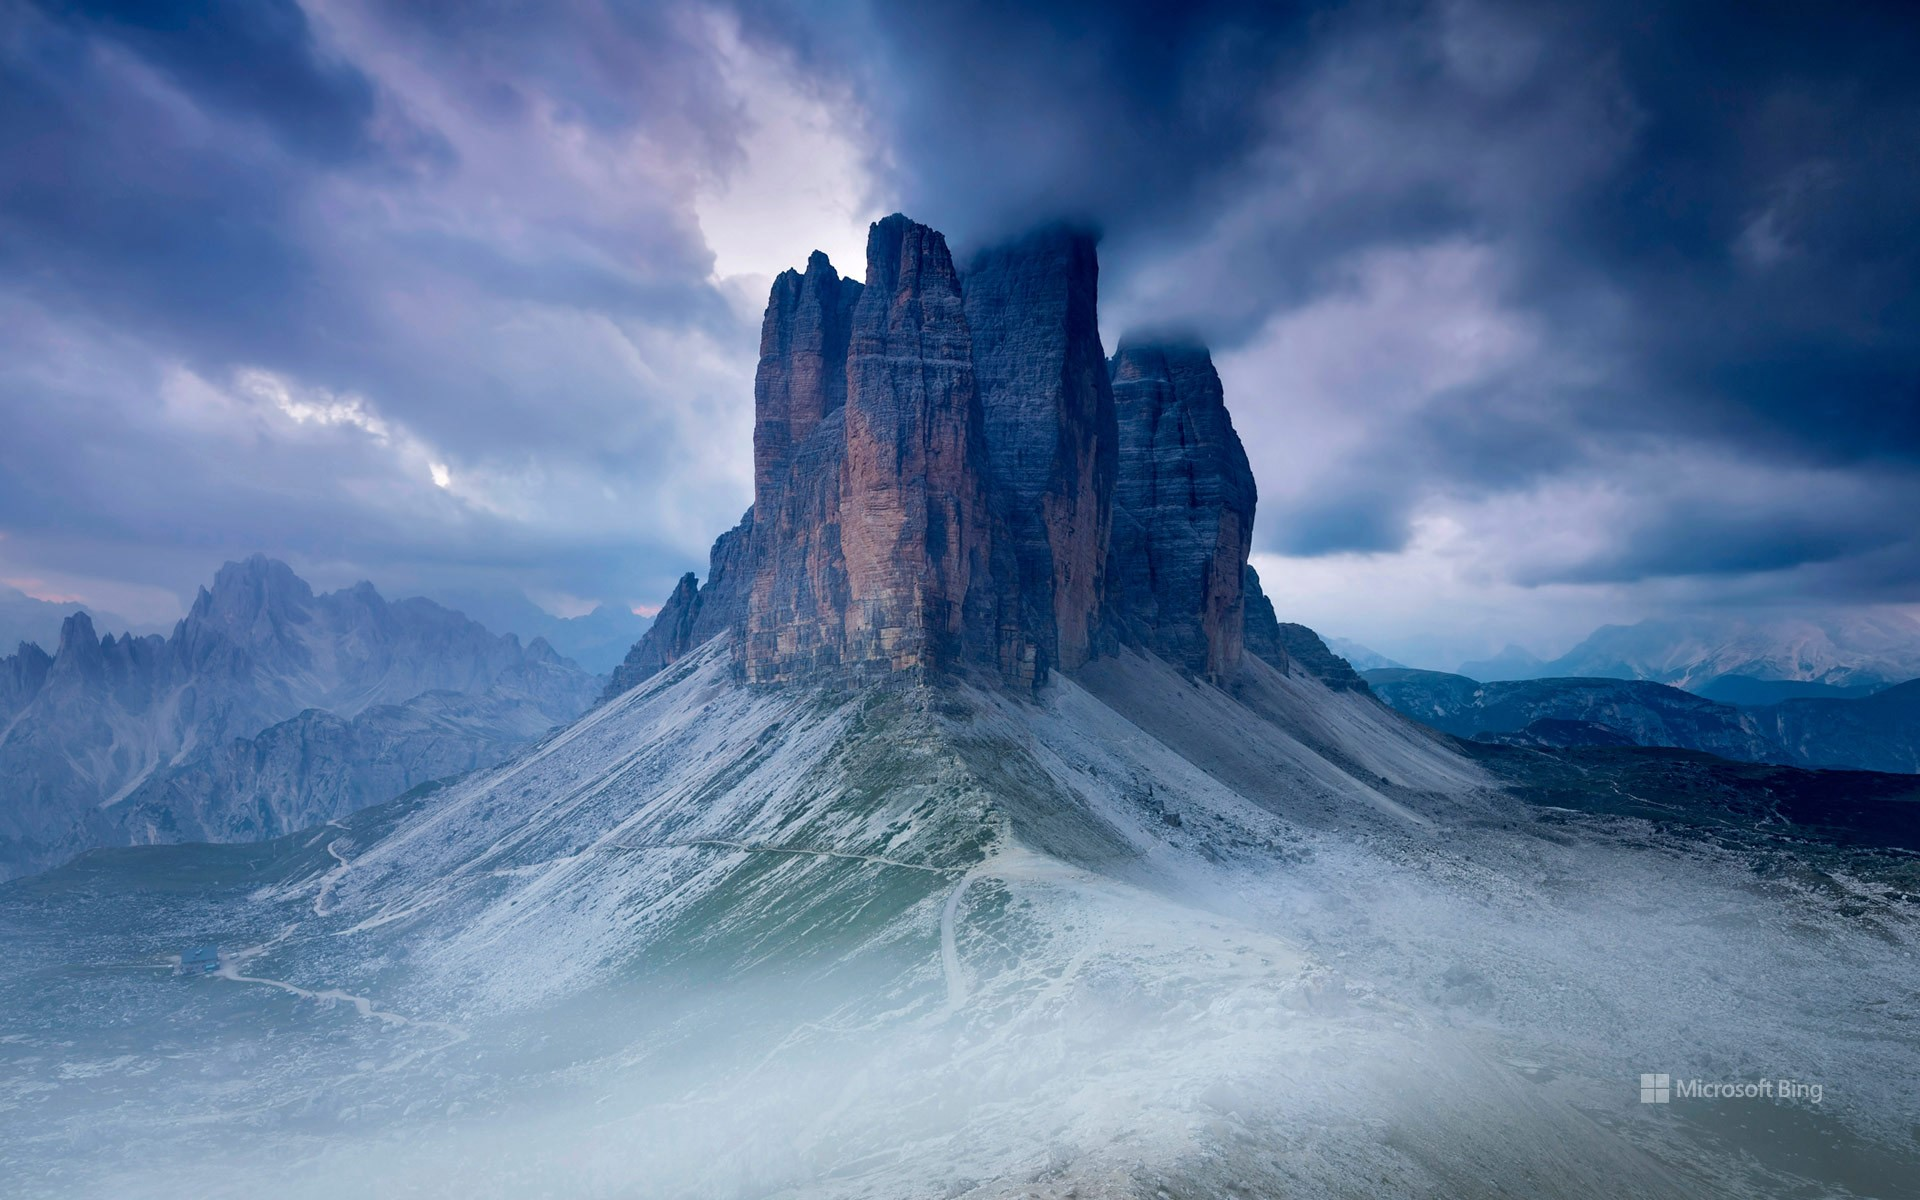 Tre Cime di Lavaredo as seen from the Lavaredo fork, Sexten Dolomites, Italy